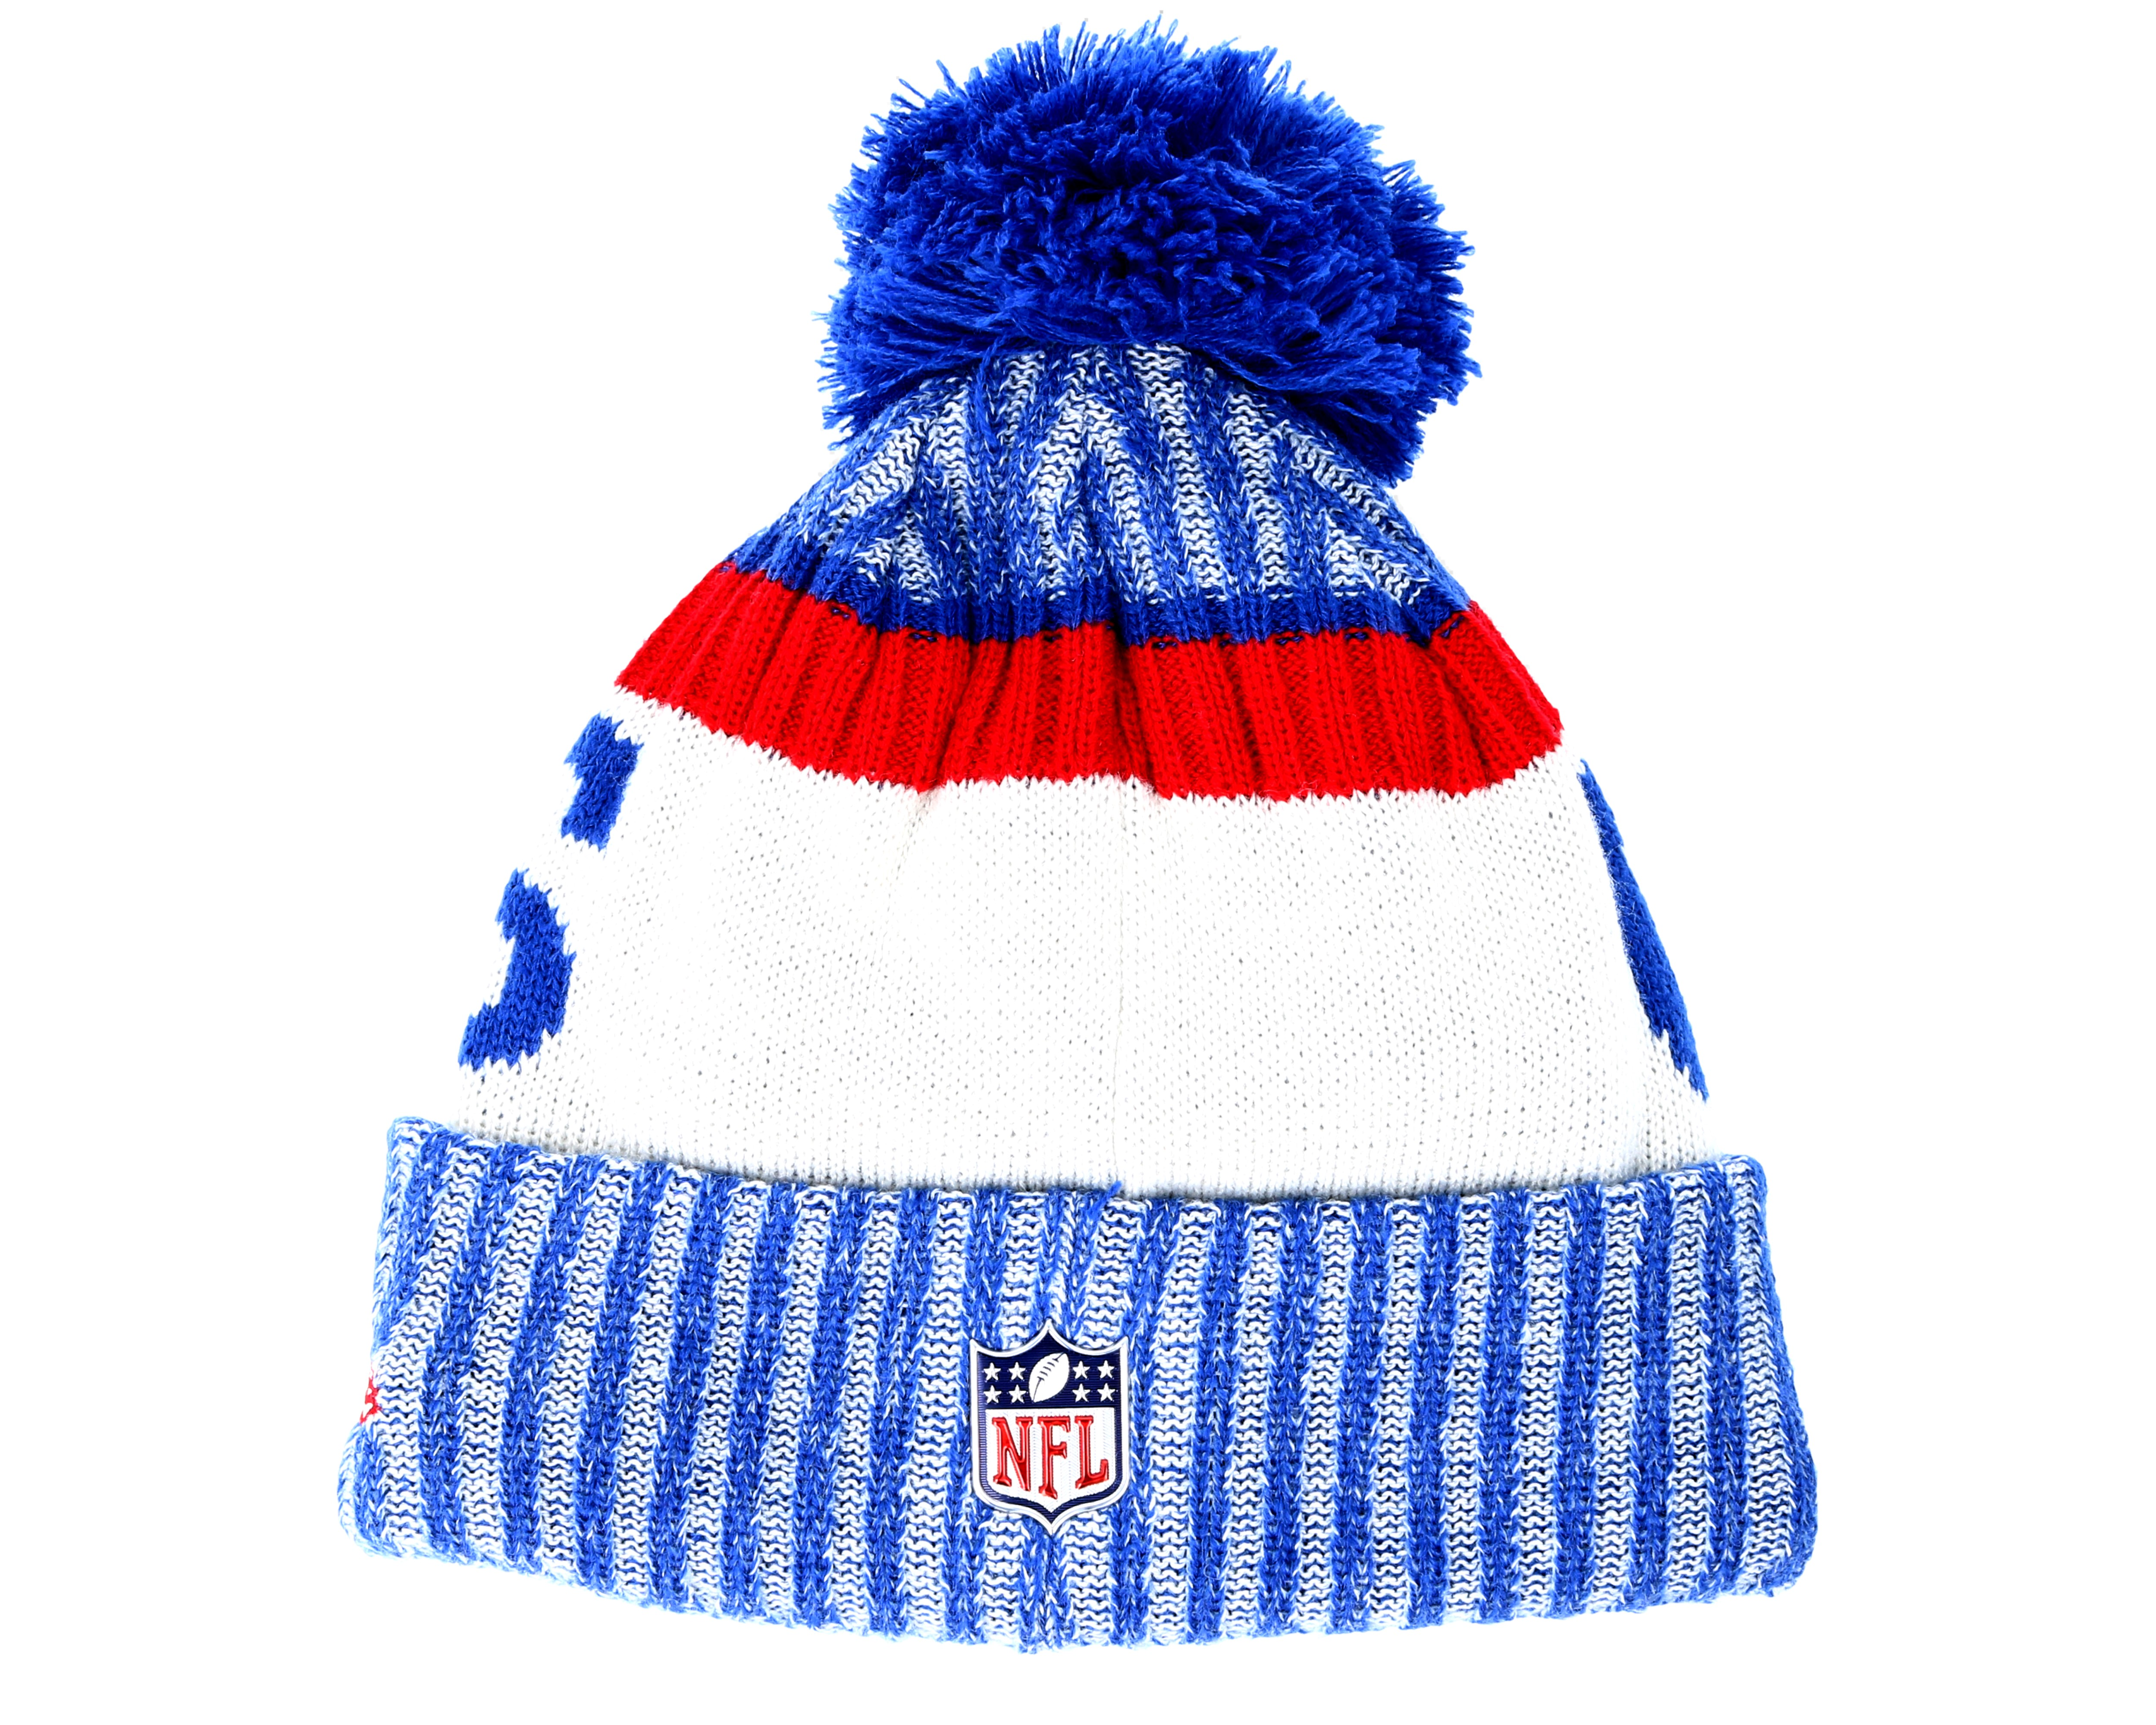 Knitting Stores Nyc : New york giants sport knit blue pom era lue